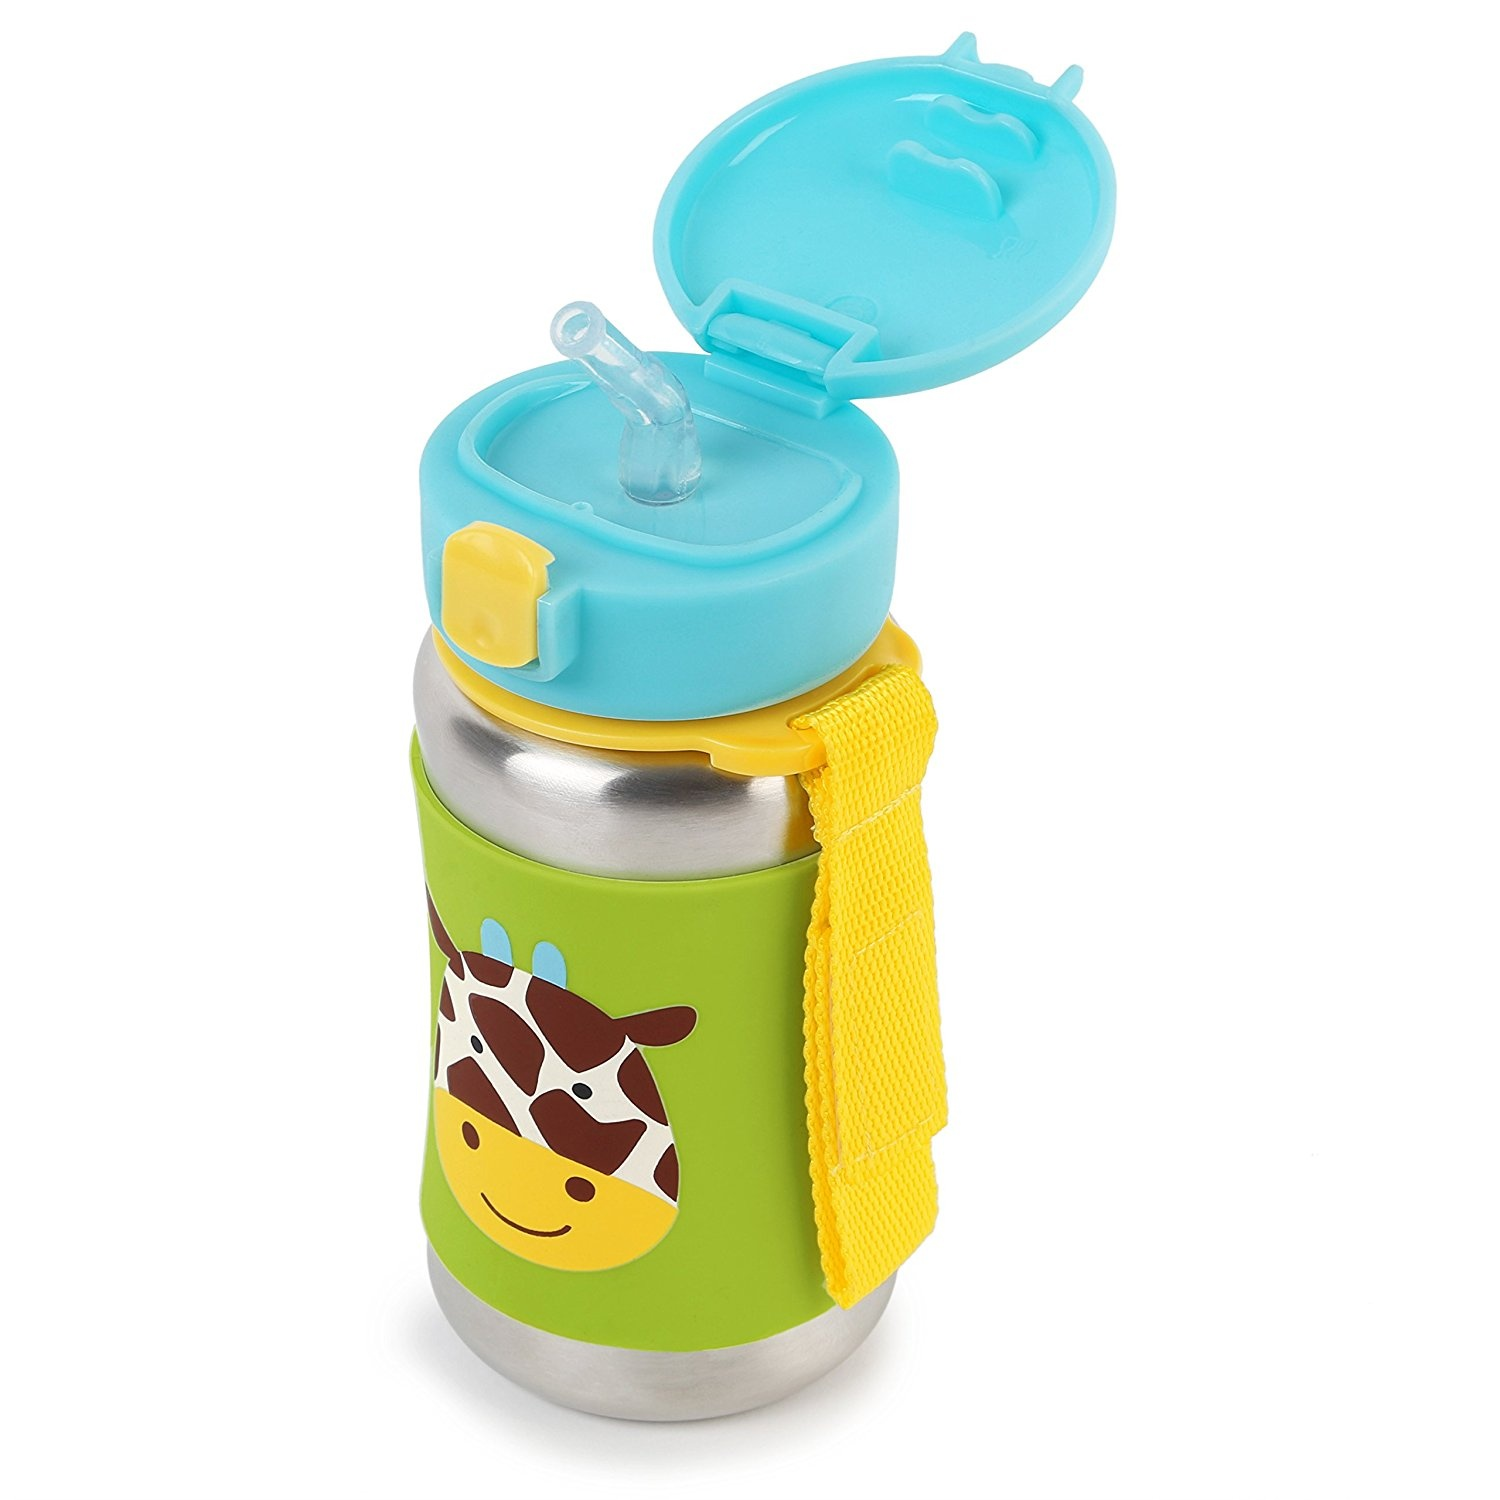 Straw Bottle Feeding Baby Buy Online From Simba Utensils Training Cup With Auto 180ml